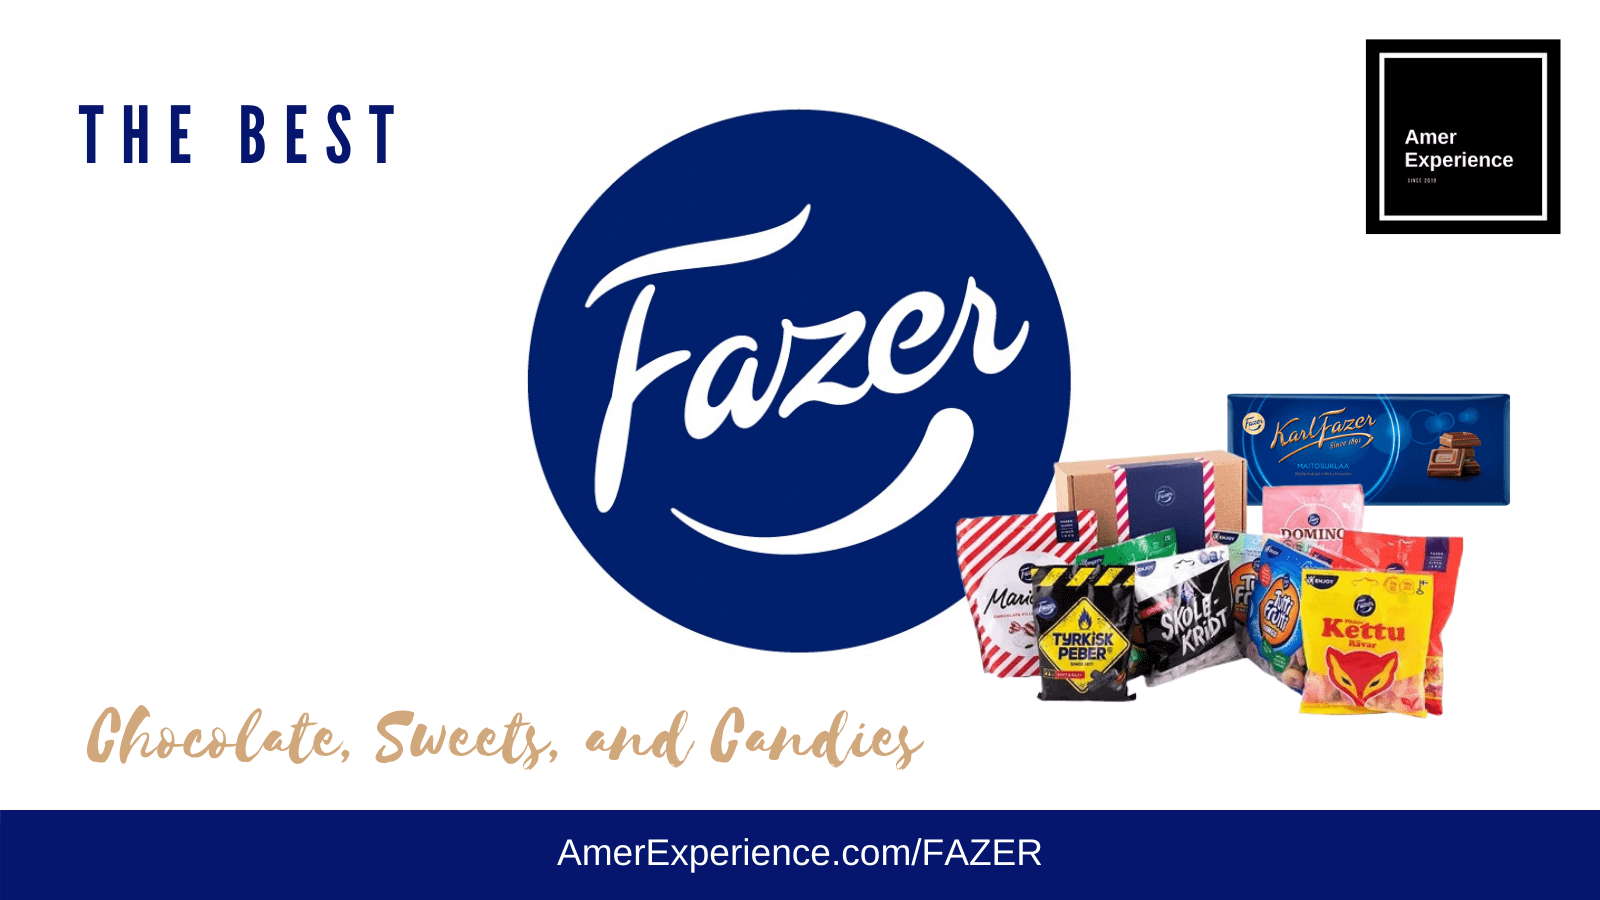 Best Fazer Chocolates Candies and Sweets